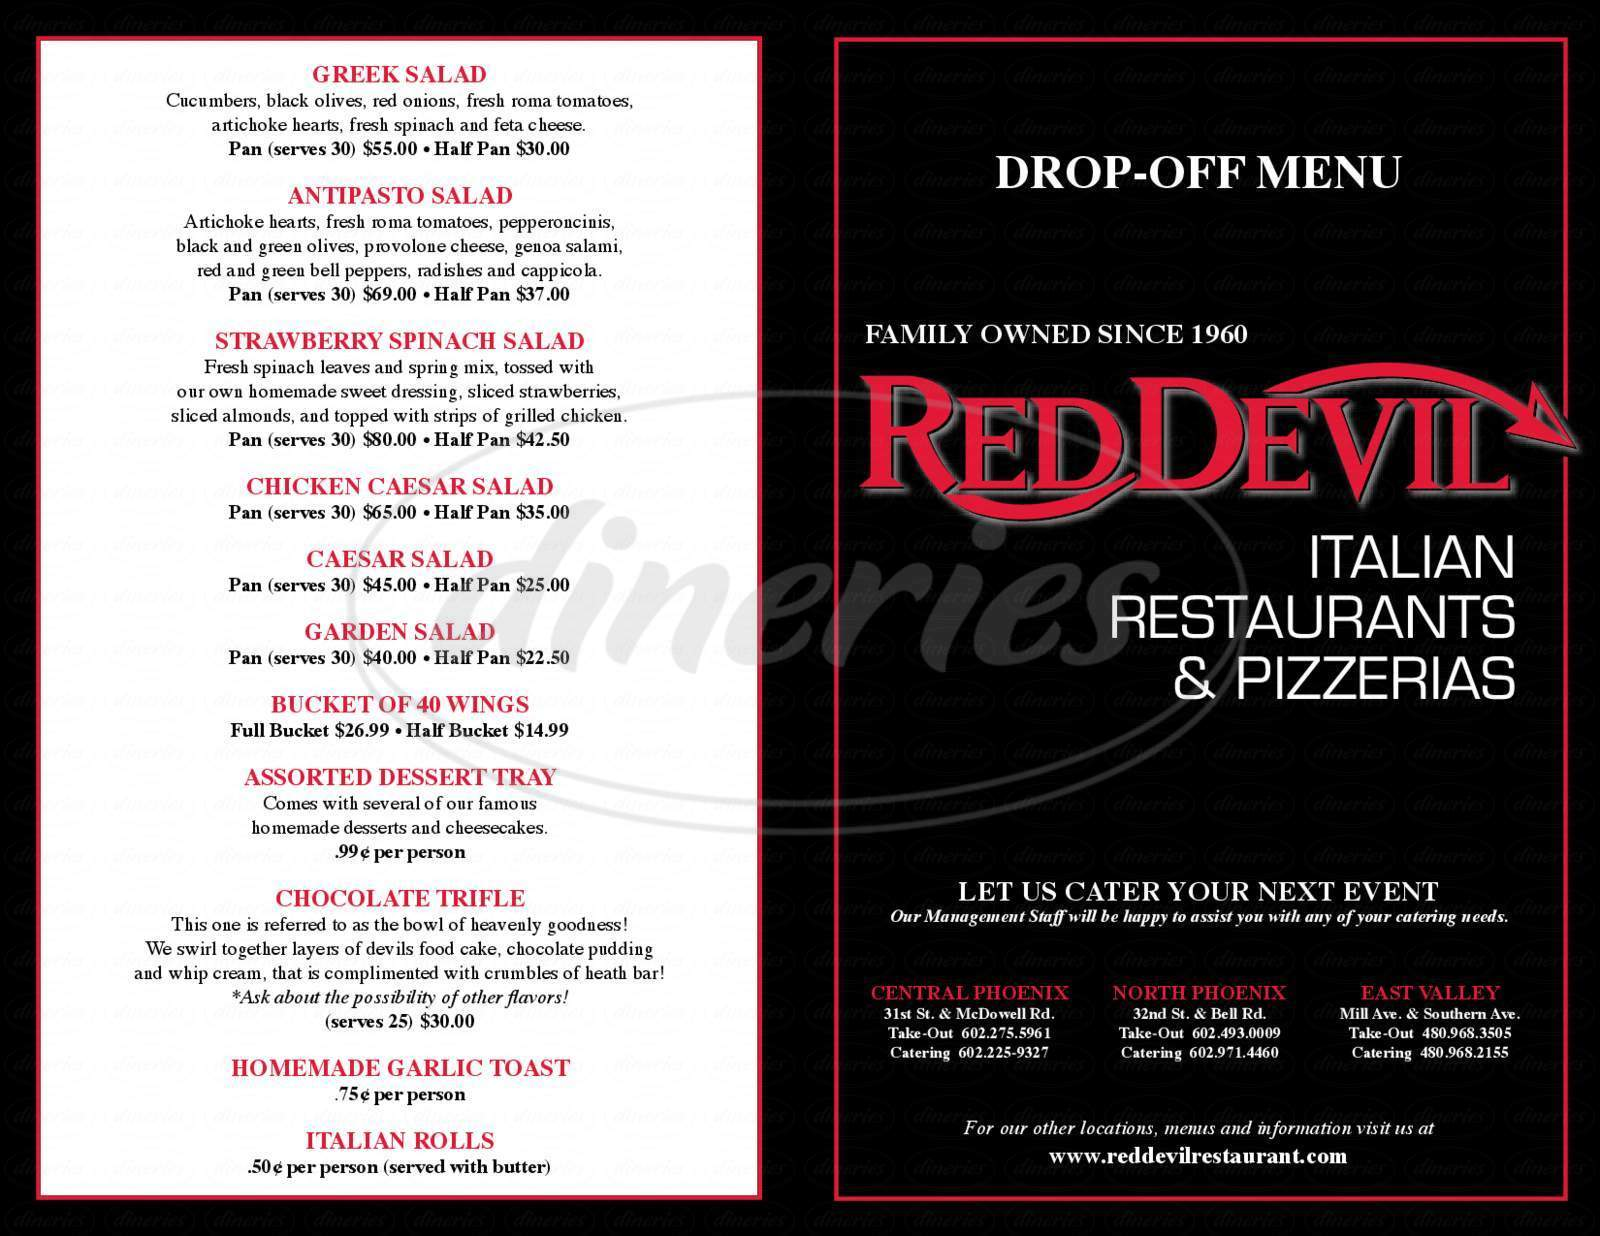 menu for Red Devil Italian Restaurant & Pizzeria